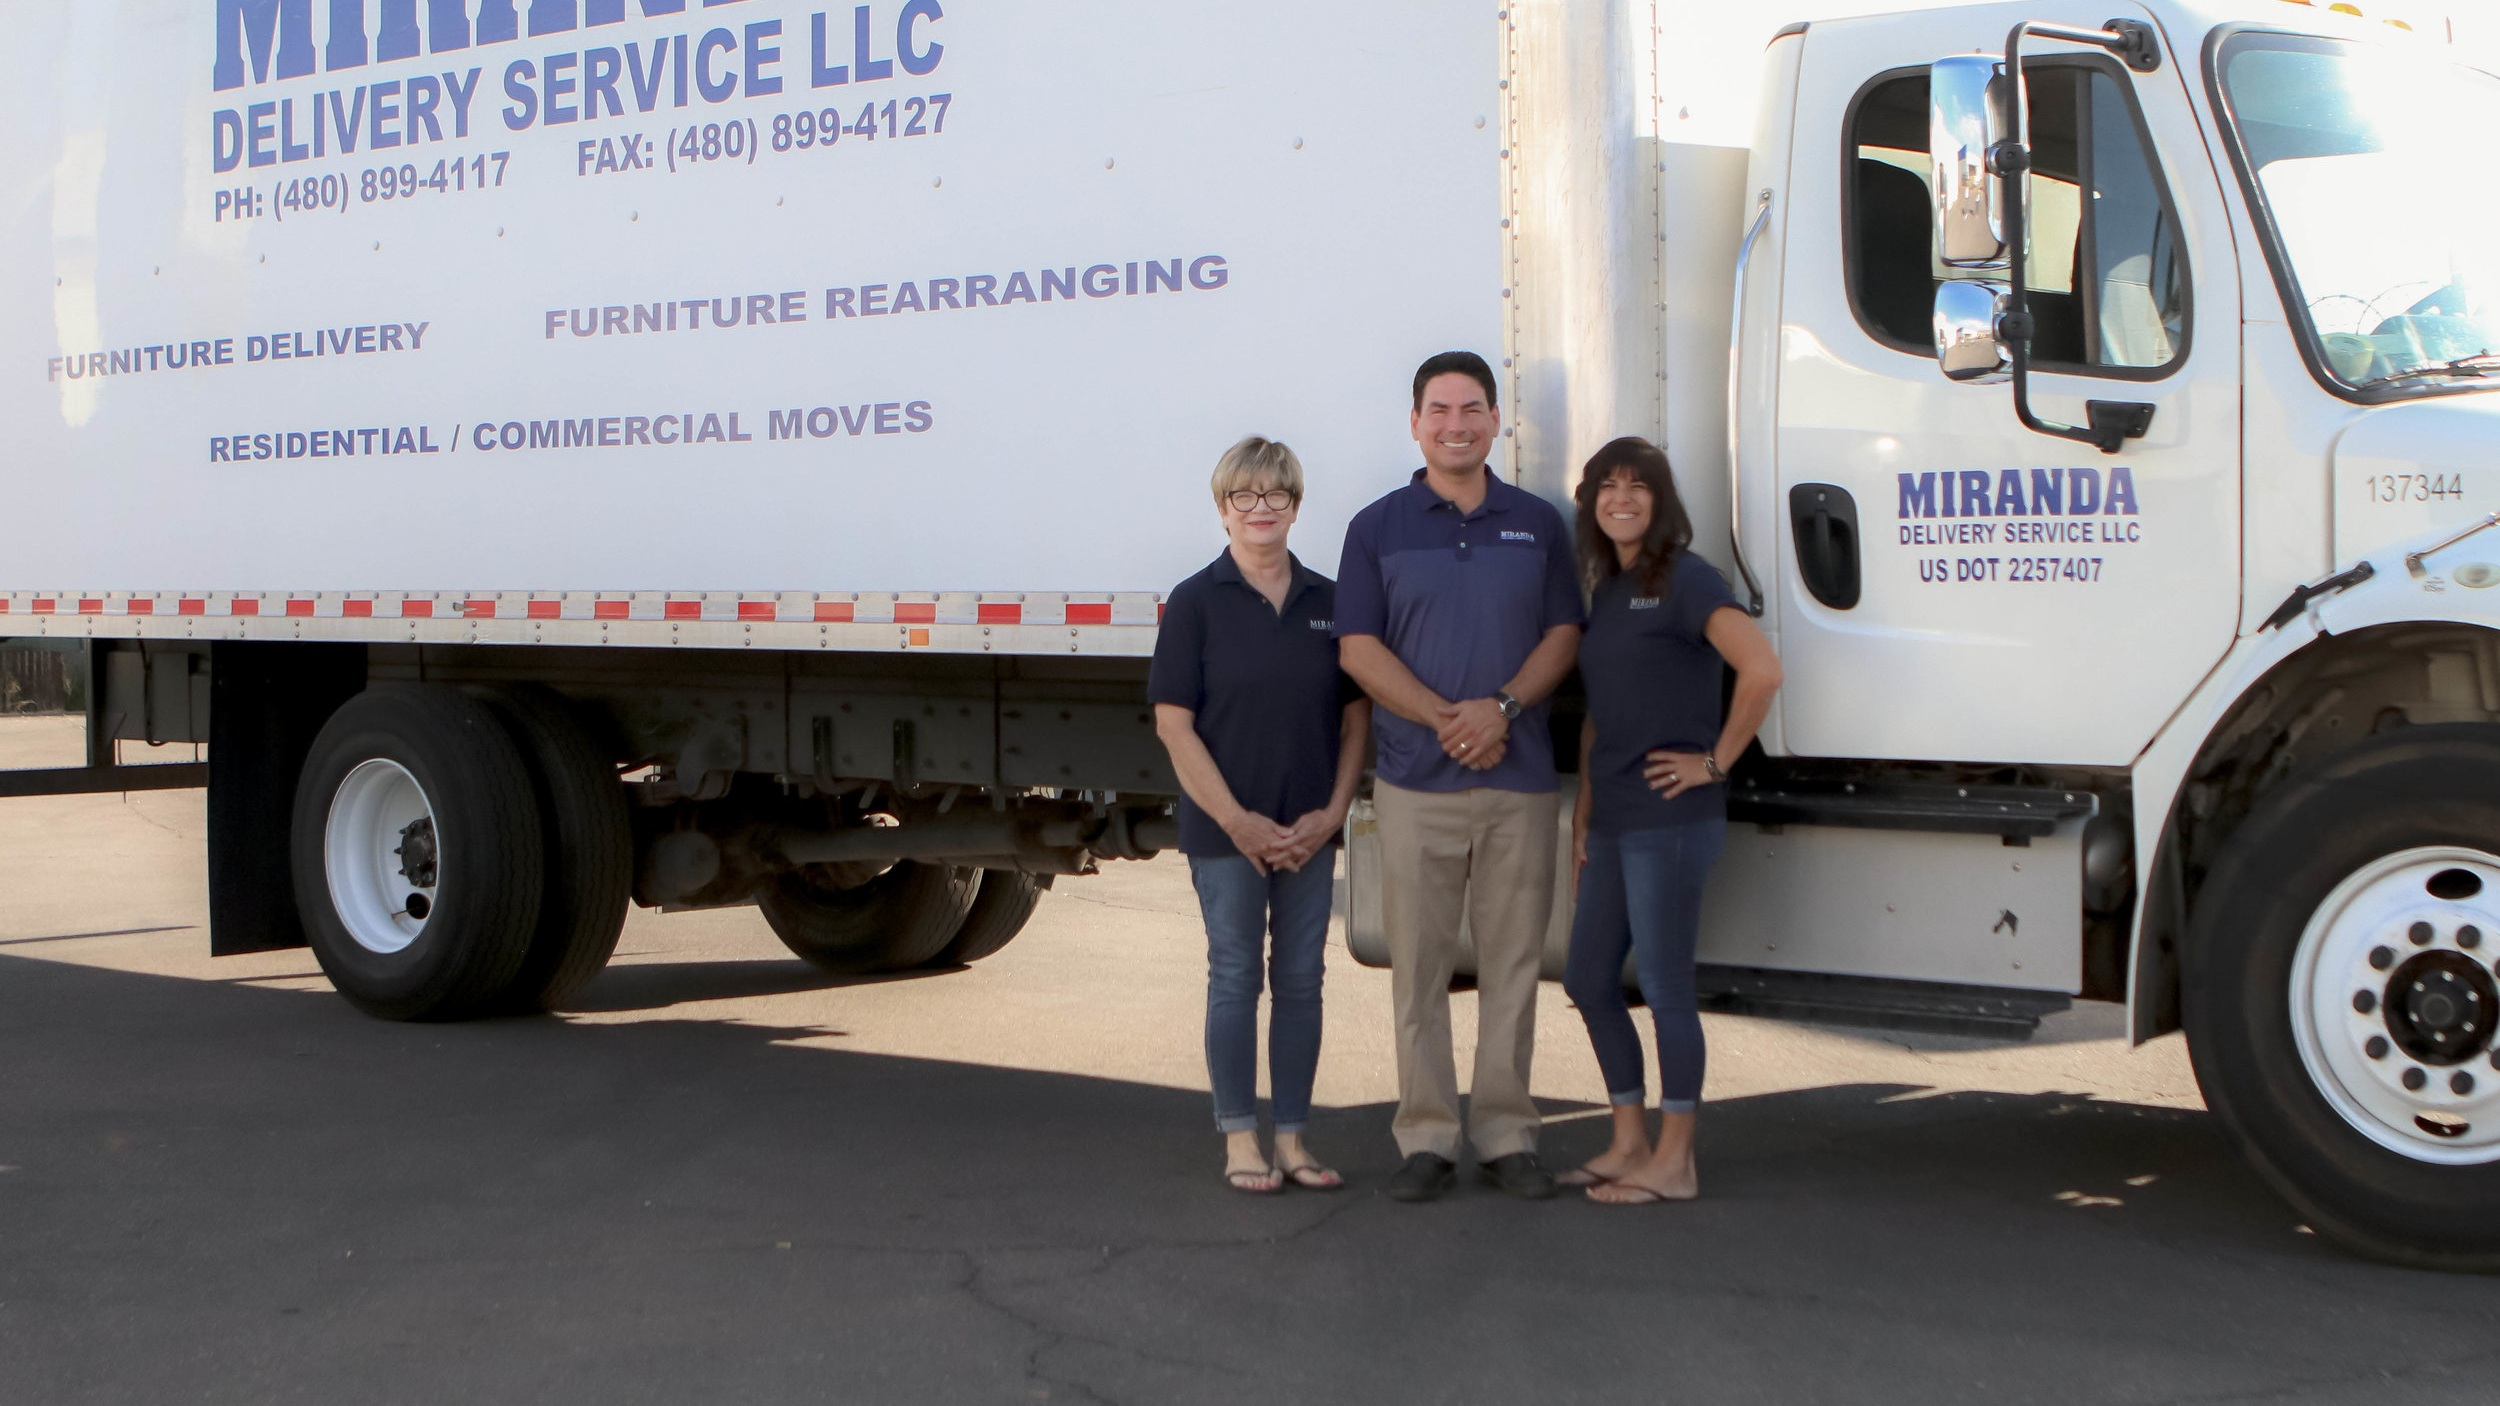 Phoenix Moving Storage And Delivery Miranda Delivery Service